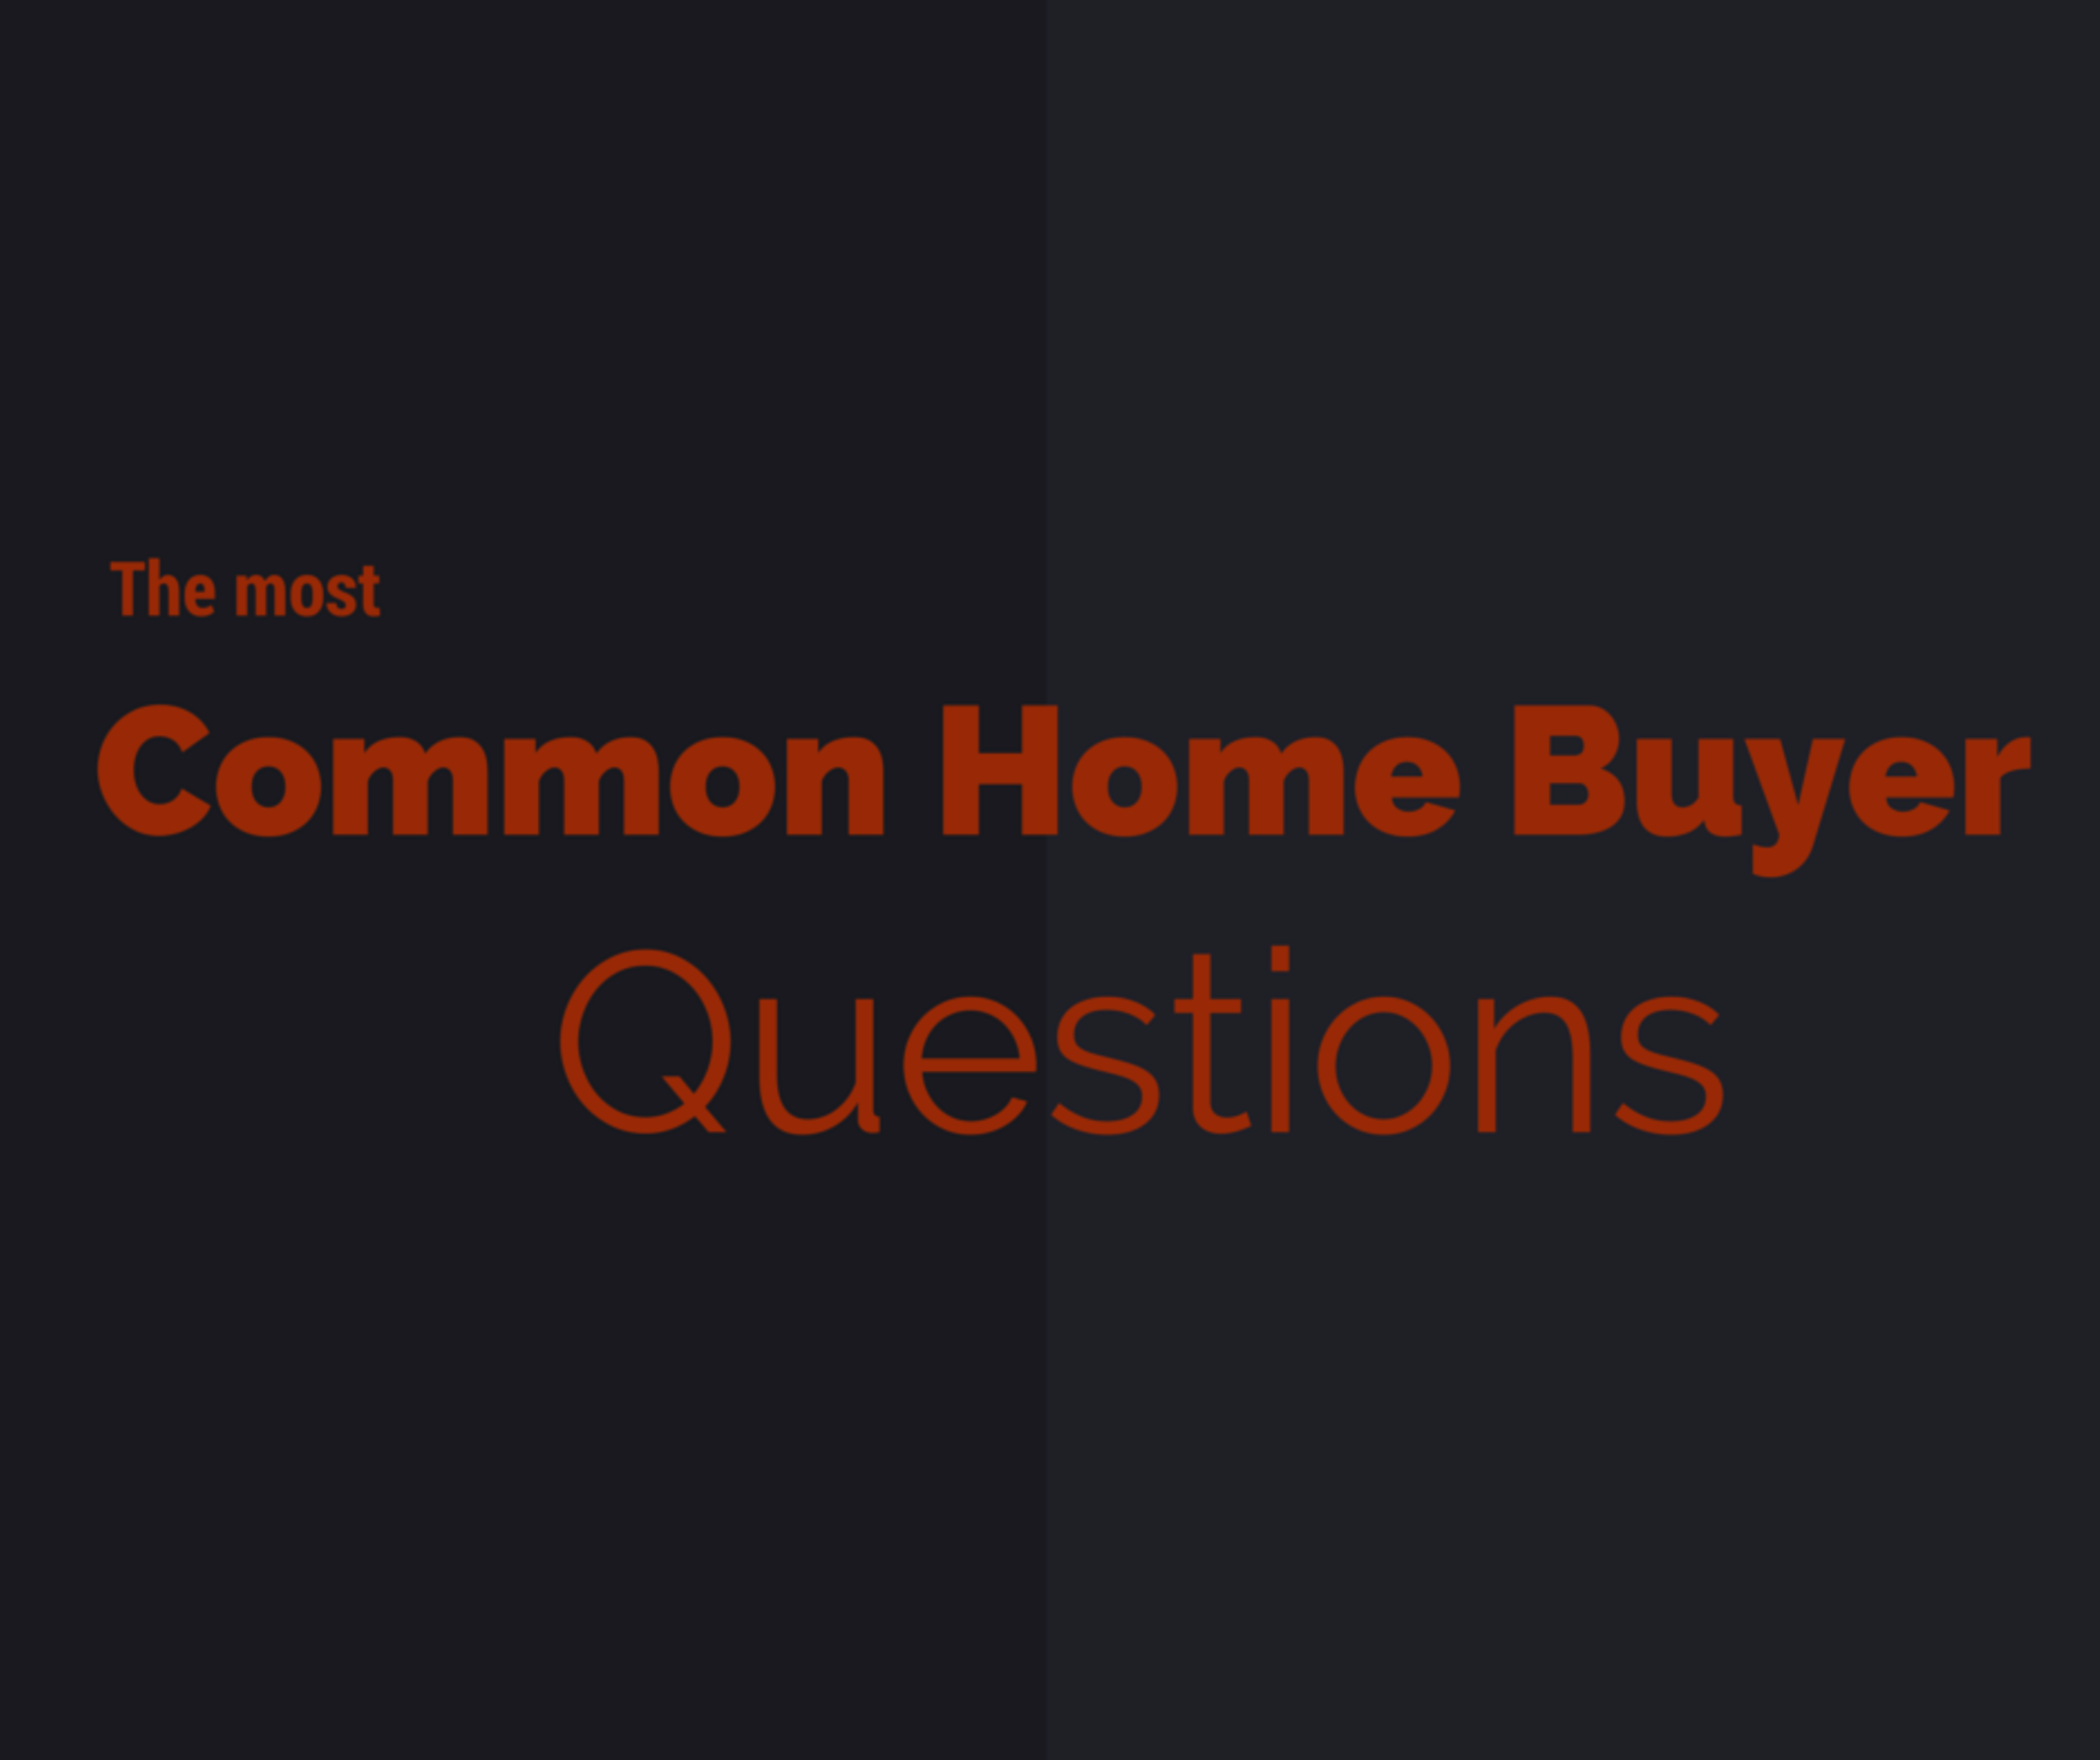 Most Common Home Buyer Questions